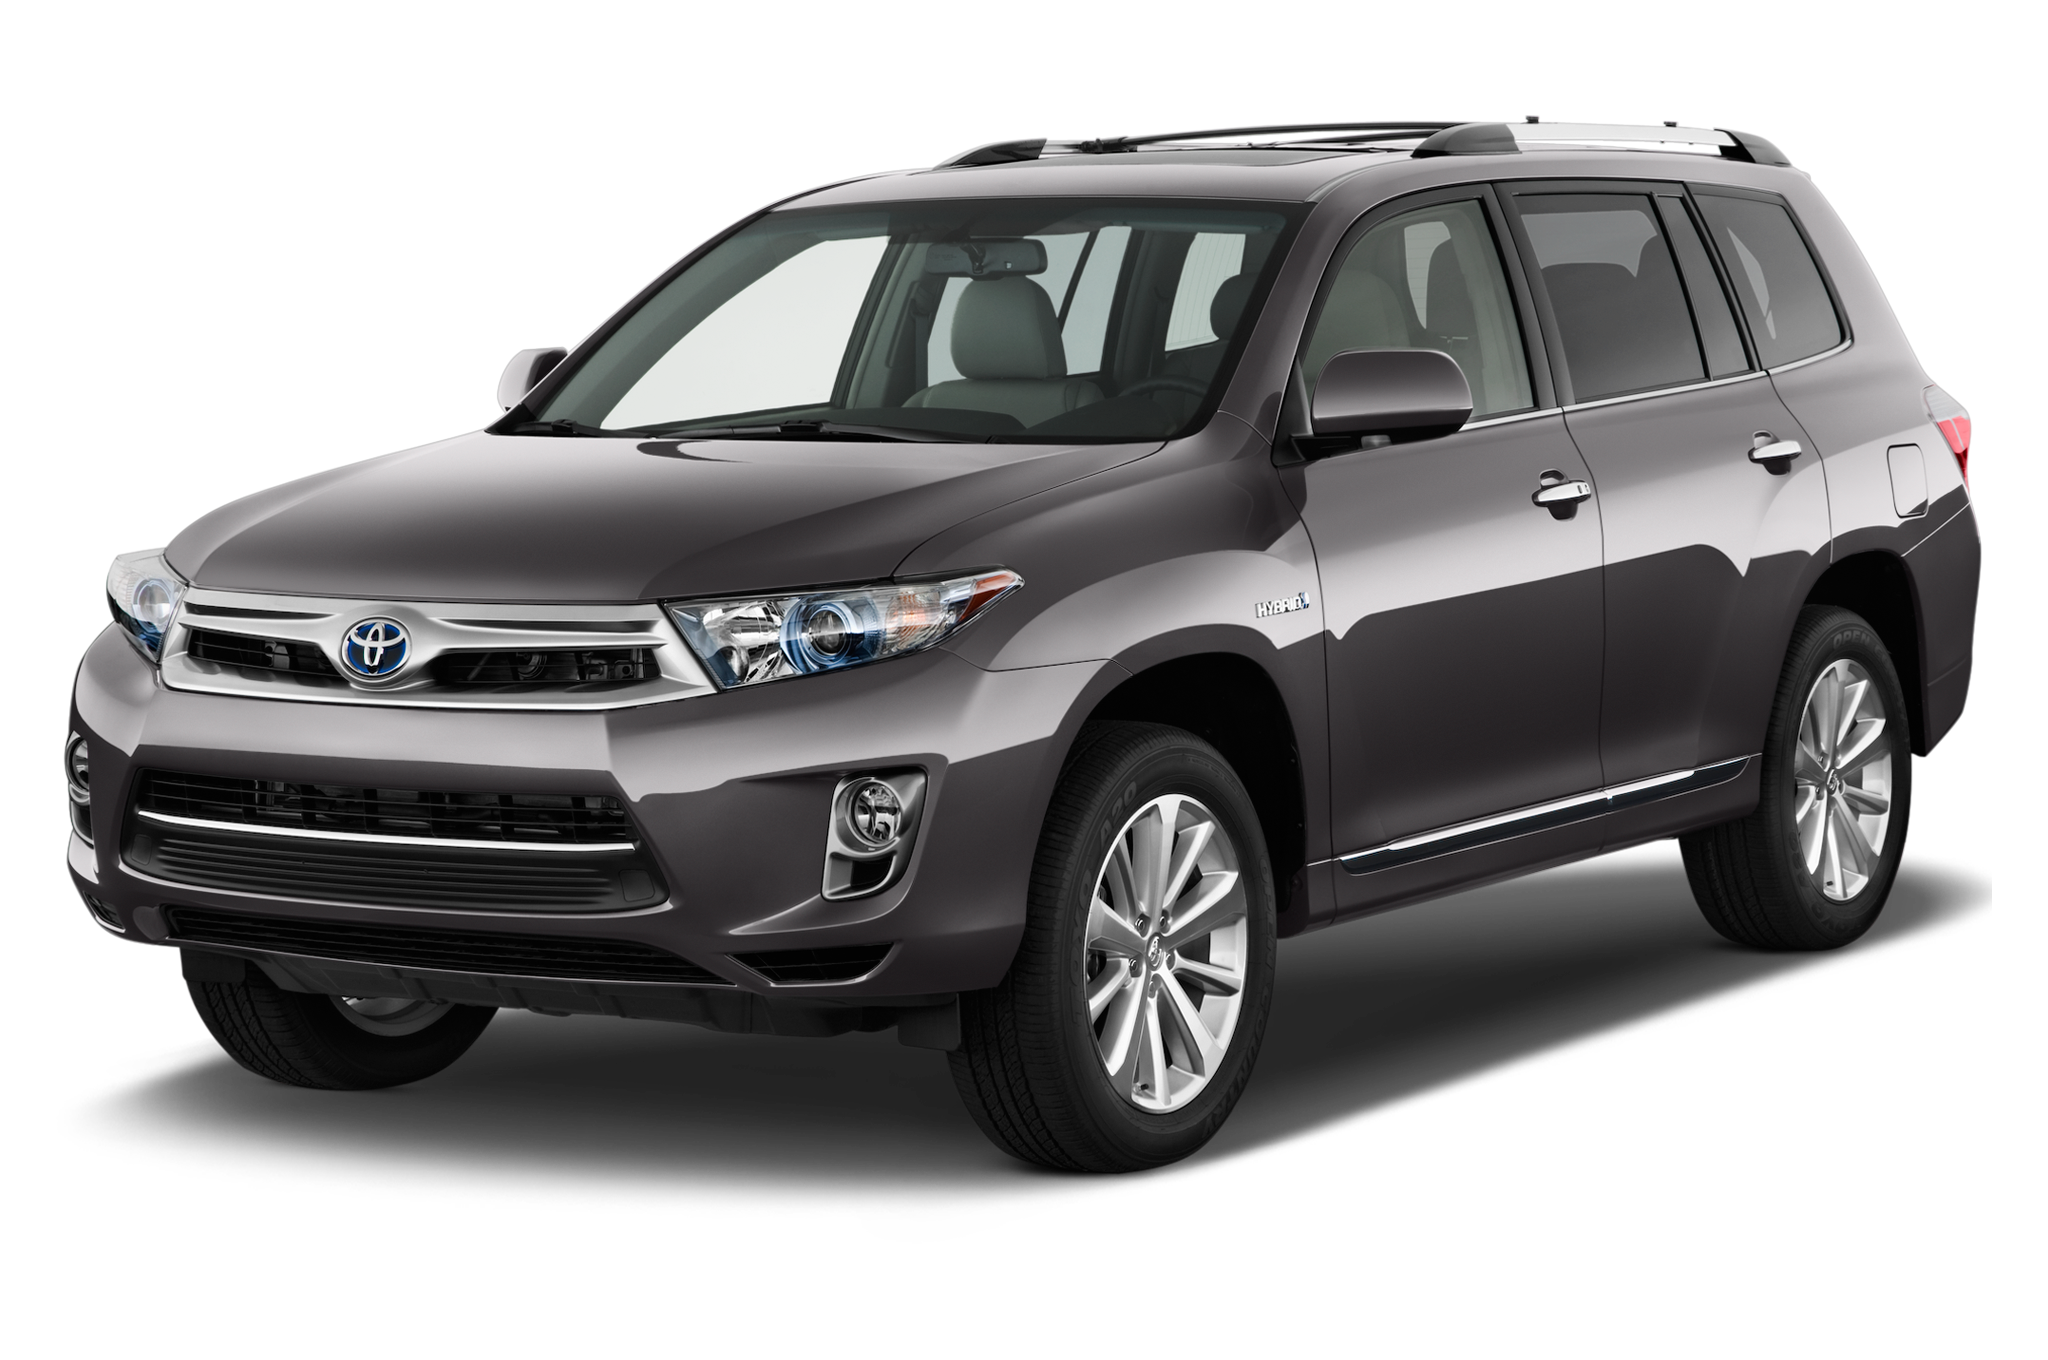 2013 toyota highlander specs and features msn autos. Black Bedroom Furniture Sets. Home Design Ideas